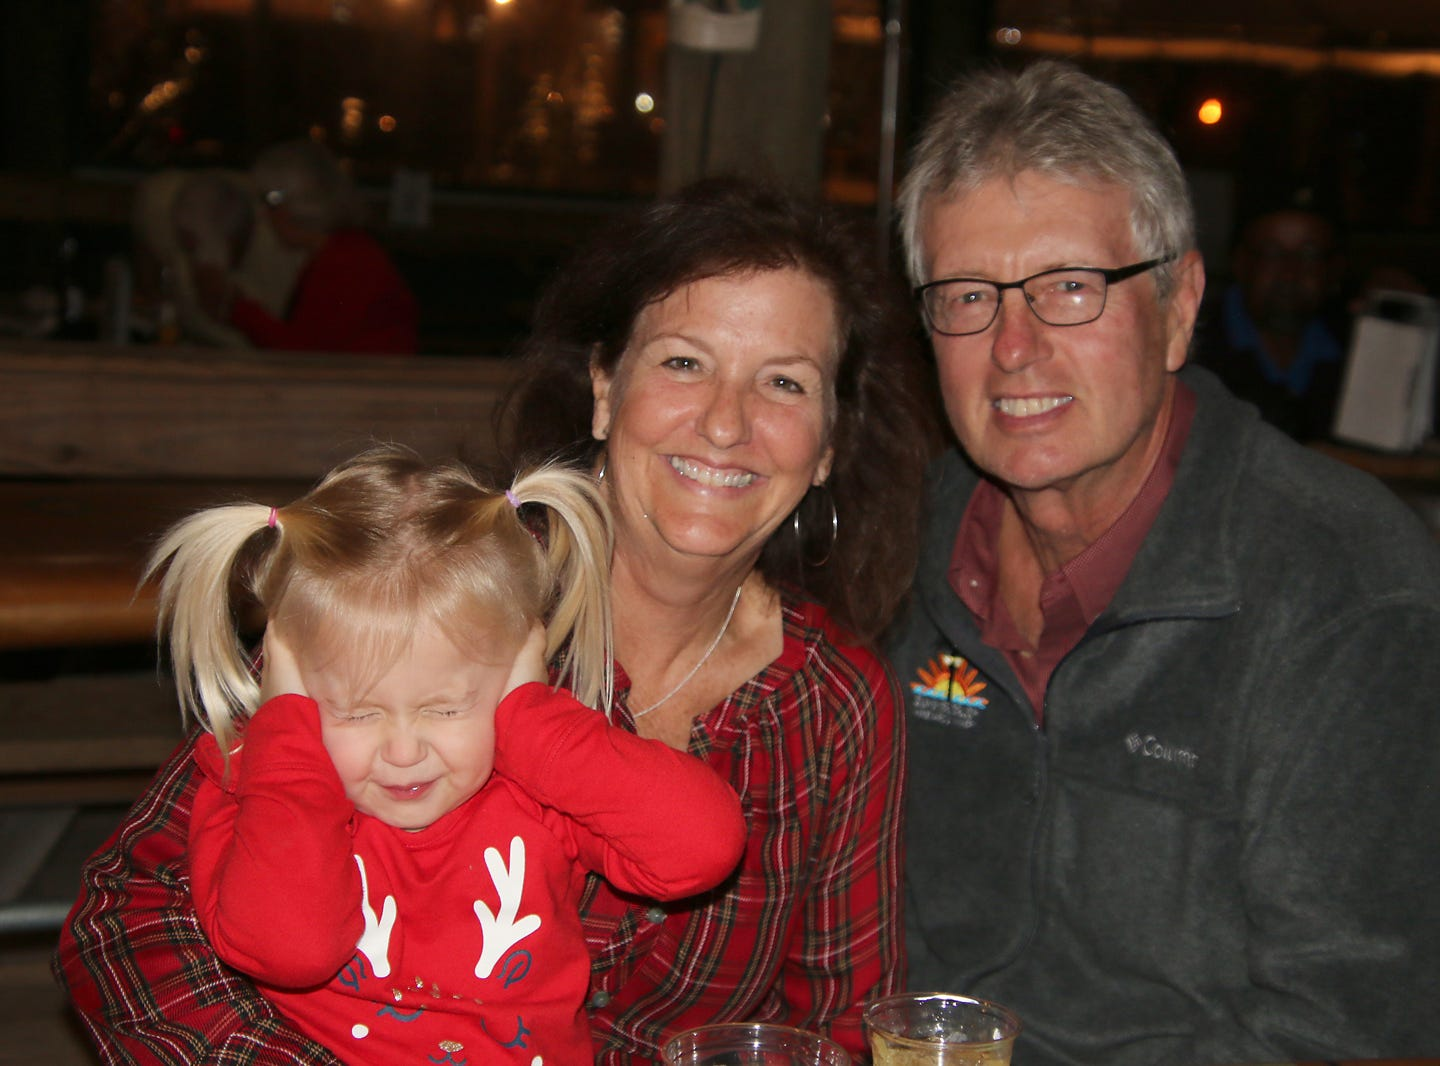 Summer Crush owners Gary and Susan Roberts and their granddaughter, who wasn't quite sure about the music, at the Fort Pierce Jazz & Blues Society's Ring-a-Ding-Ding Holiday Fling at Summer Crush Vineyard & Winery.